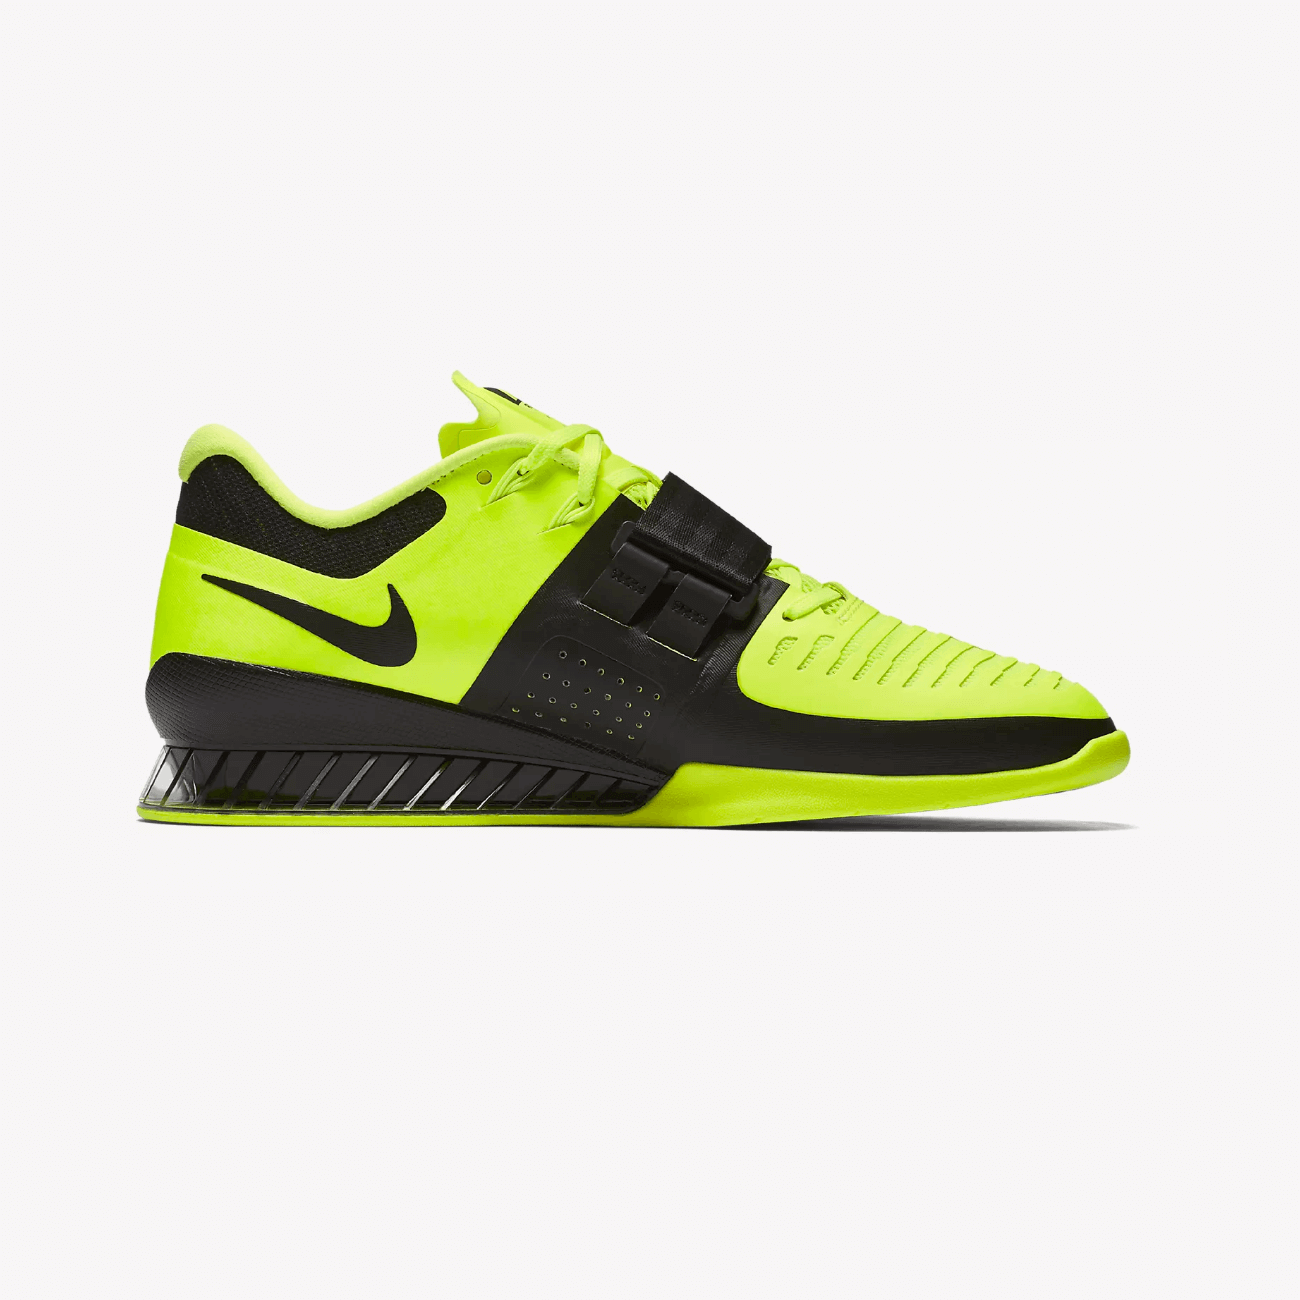 Crossfit Chaussure Crossfit Nike Nike Chaussure Chaussure SInqPd